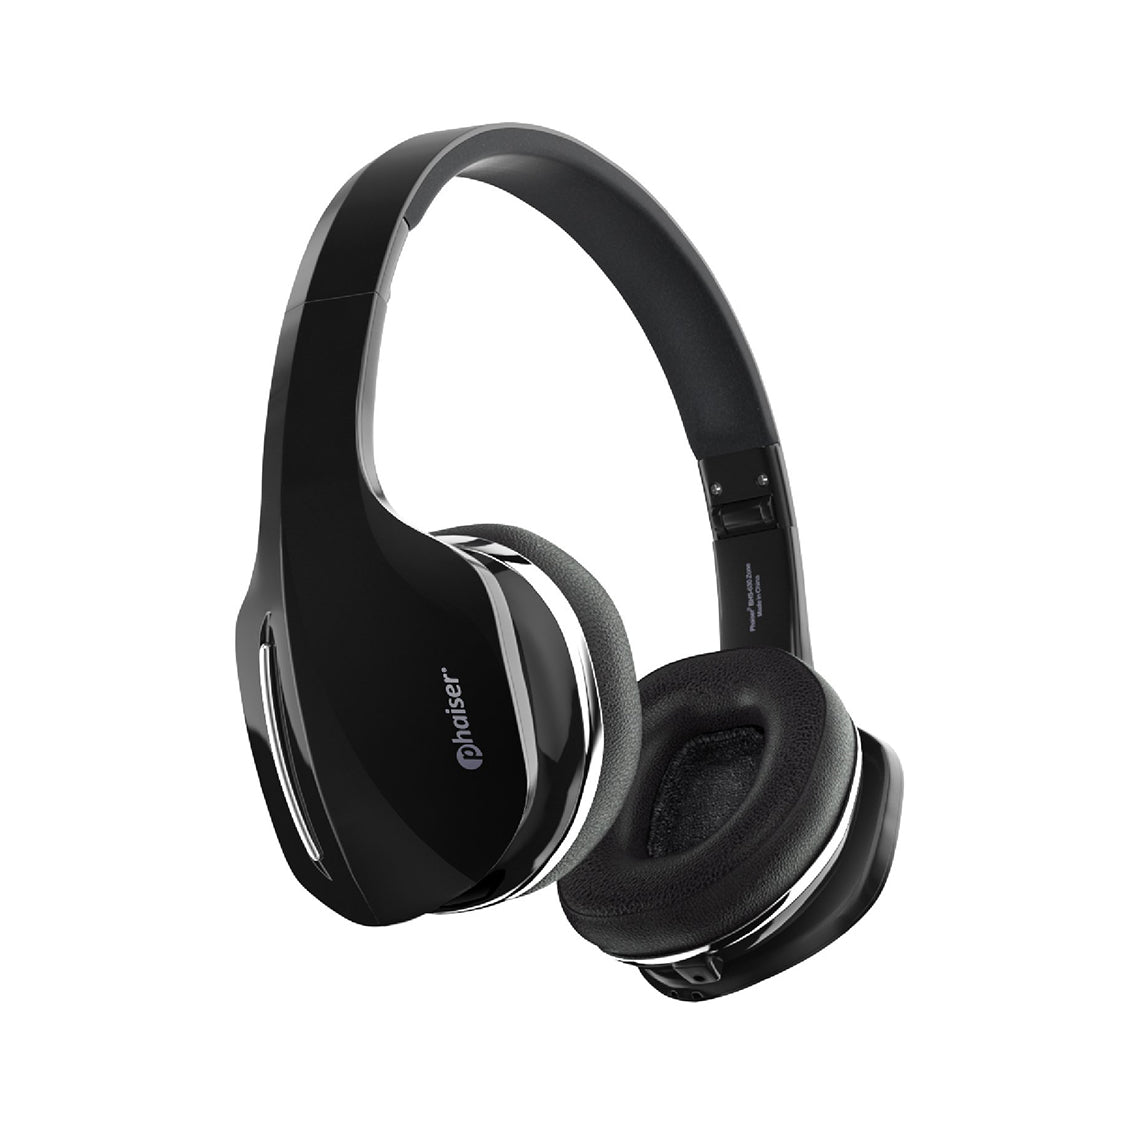 Phaiser BHS-630 Bluetooth Headphones